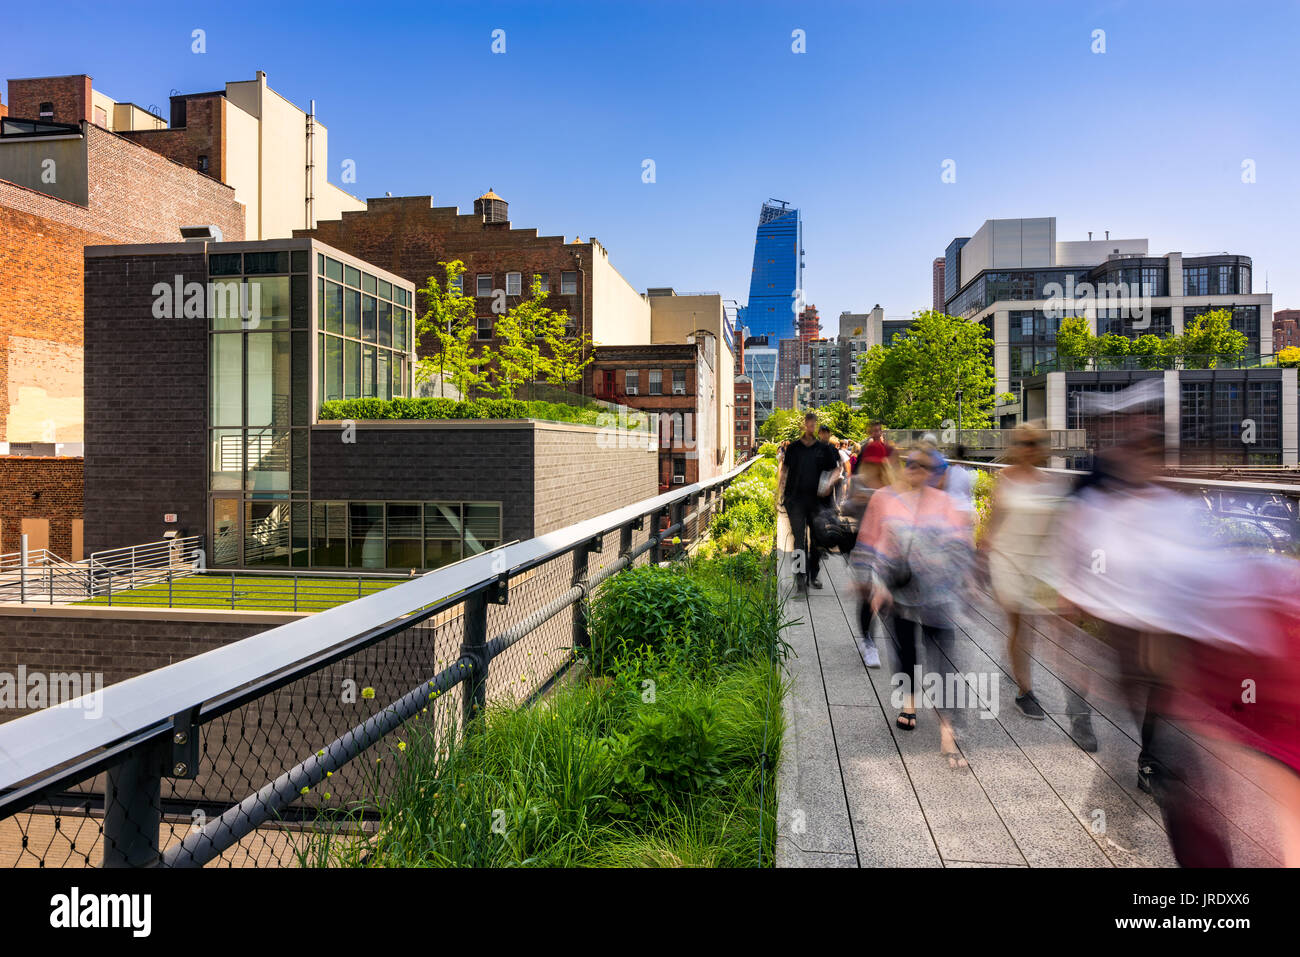 Morning on the The High Line, Chelsea, Manhattan, New York City - Stock Image